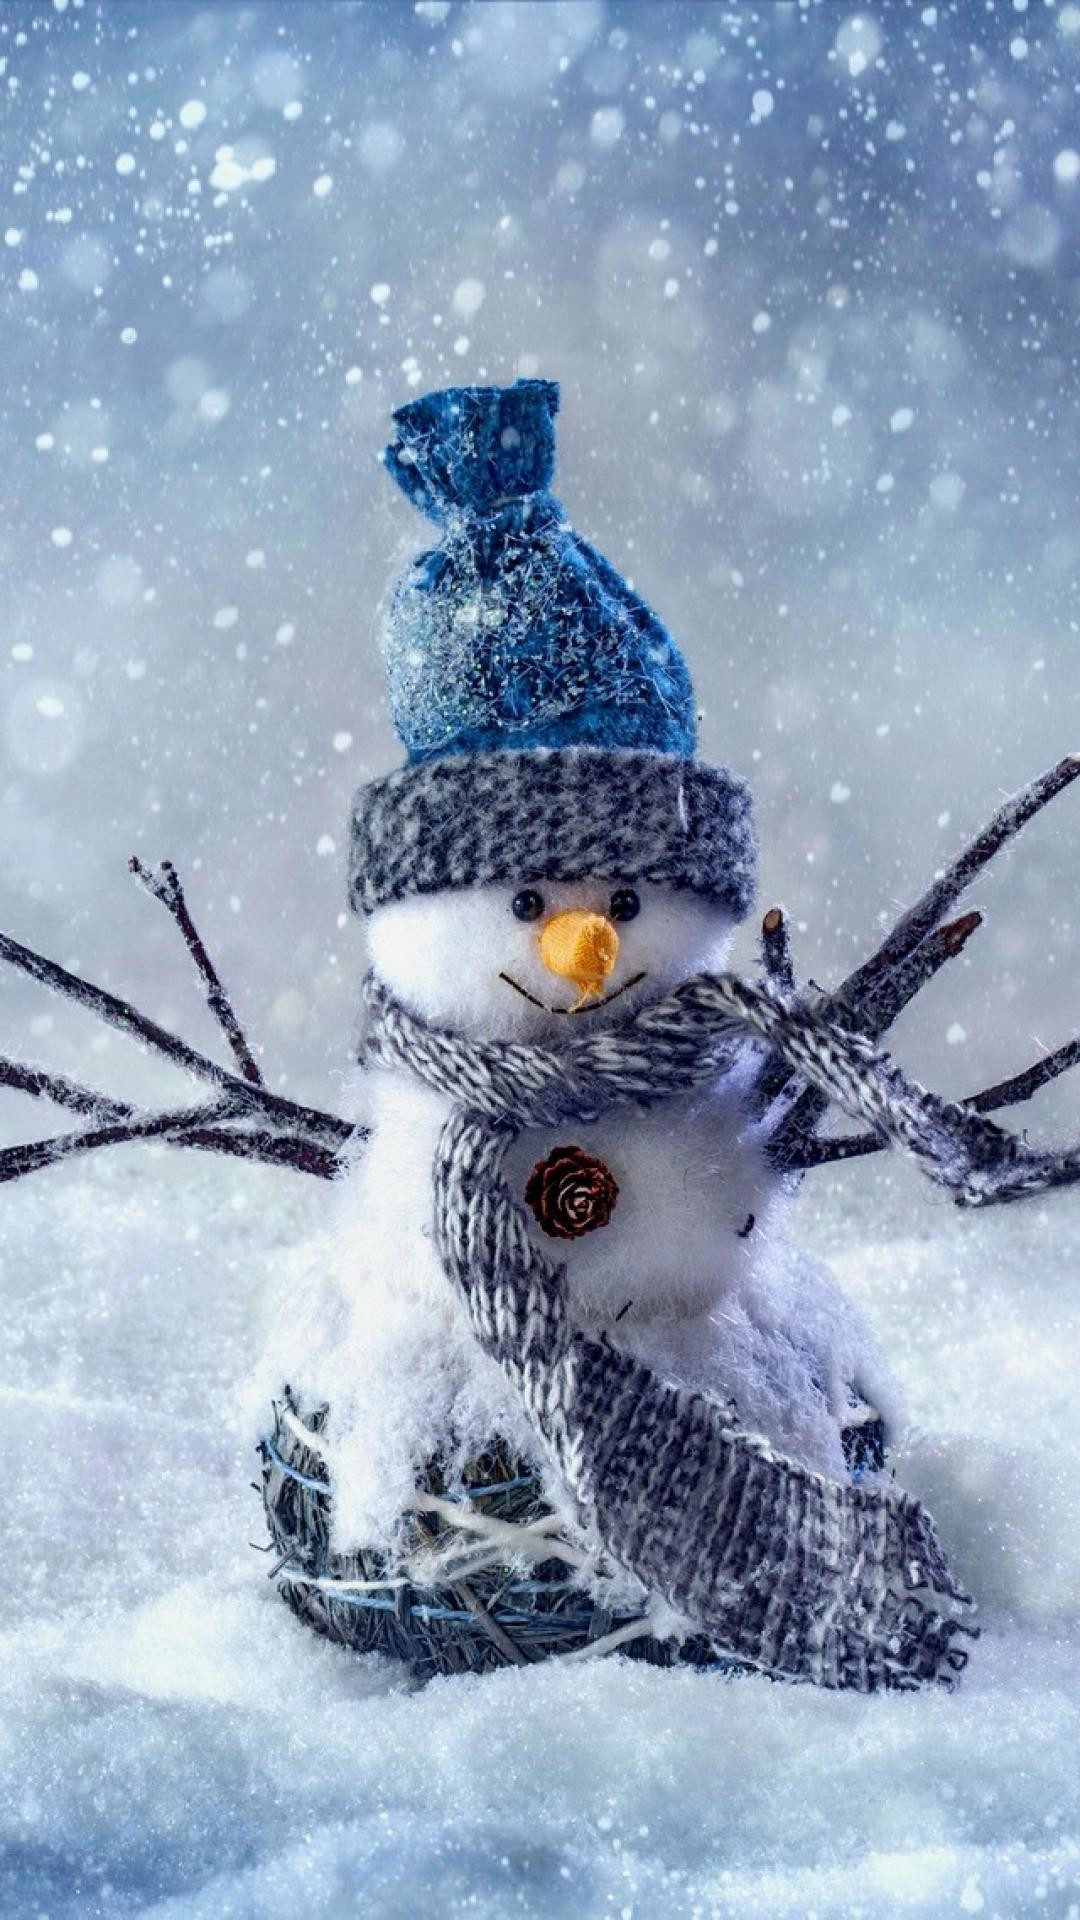 Christmas Snowman New Year #iPhone #6 #plus #wallpaper Merry Christmas!